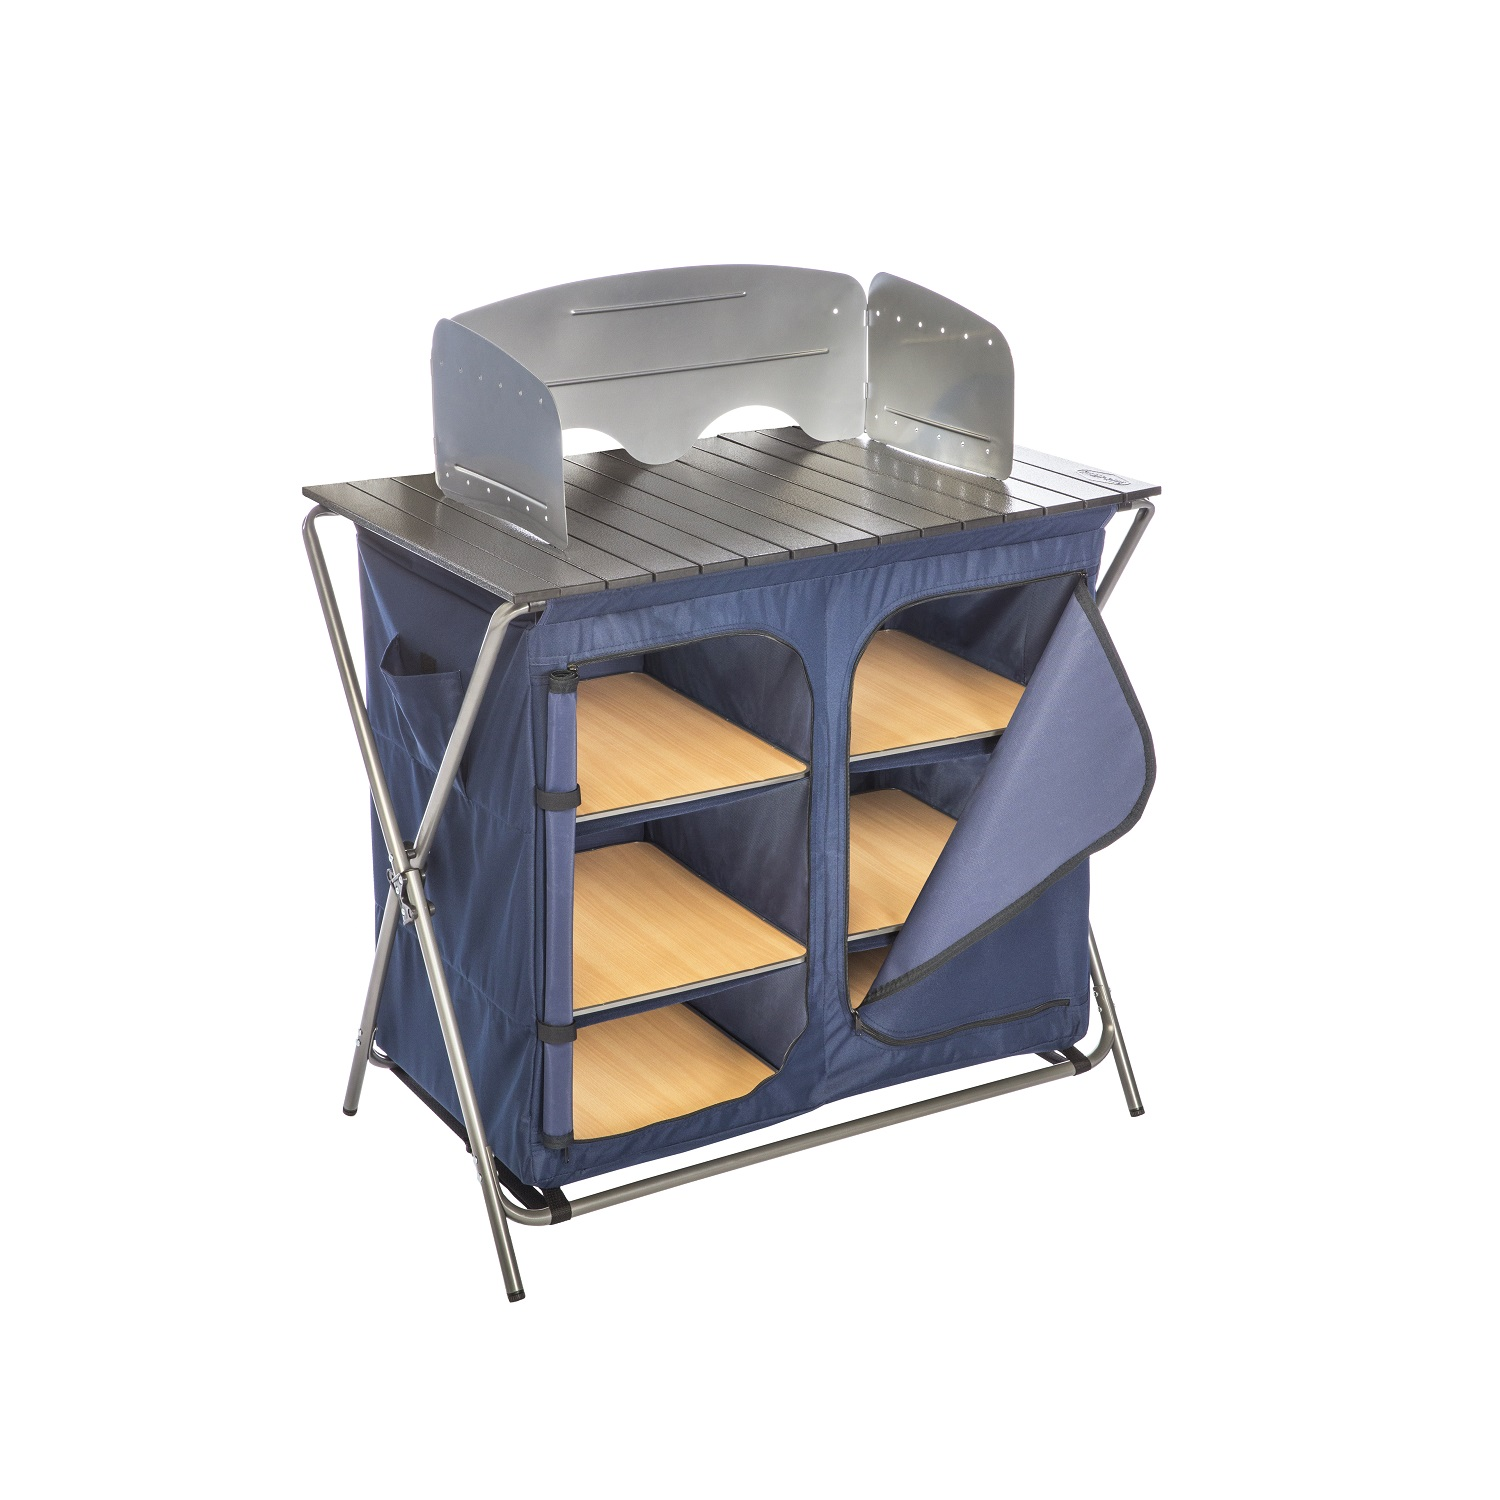 Kamp-Rite Kwik Pantry with Cook Table and Carry Bag